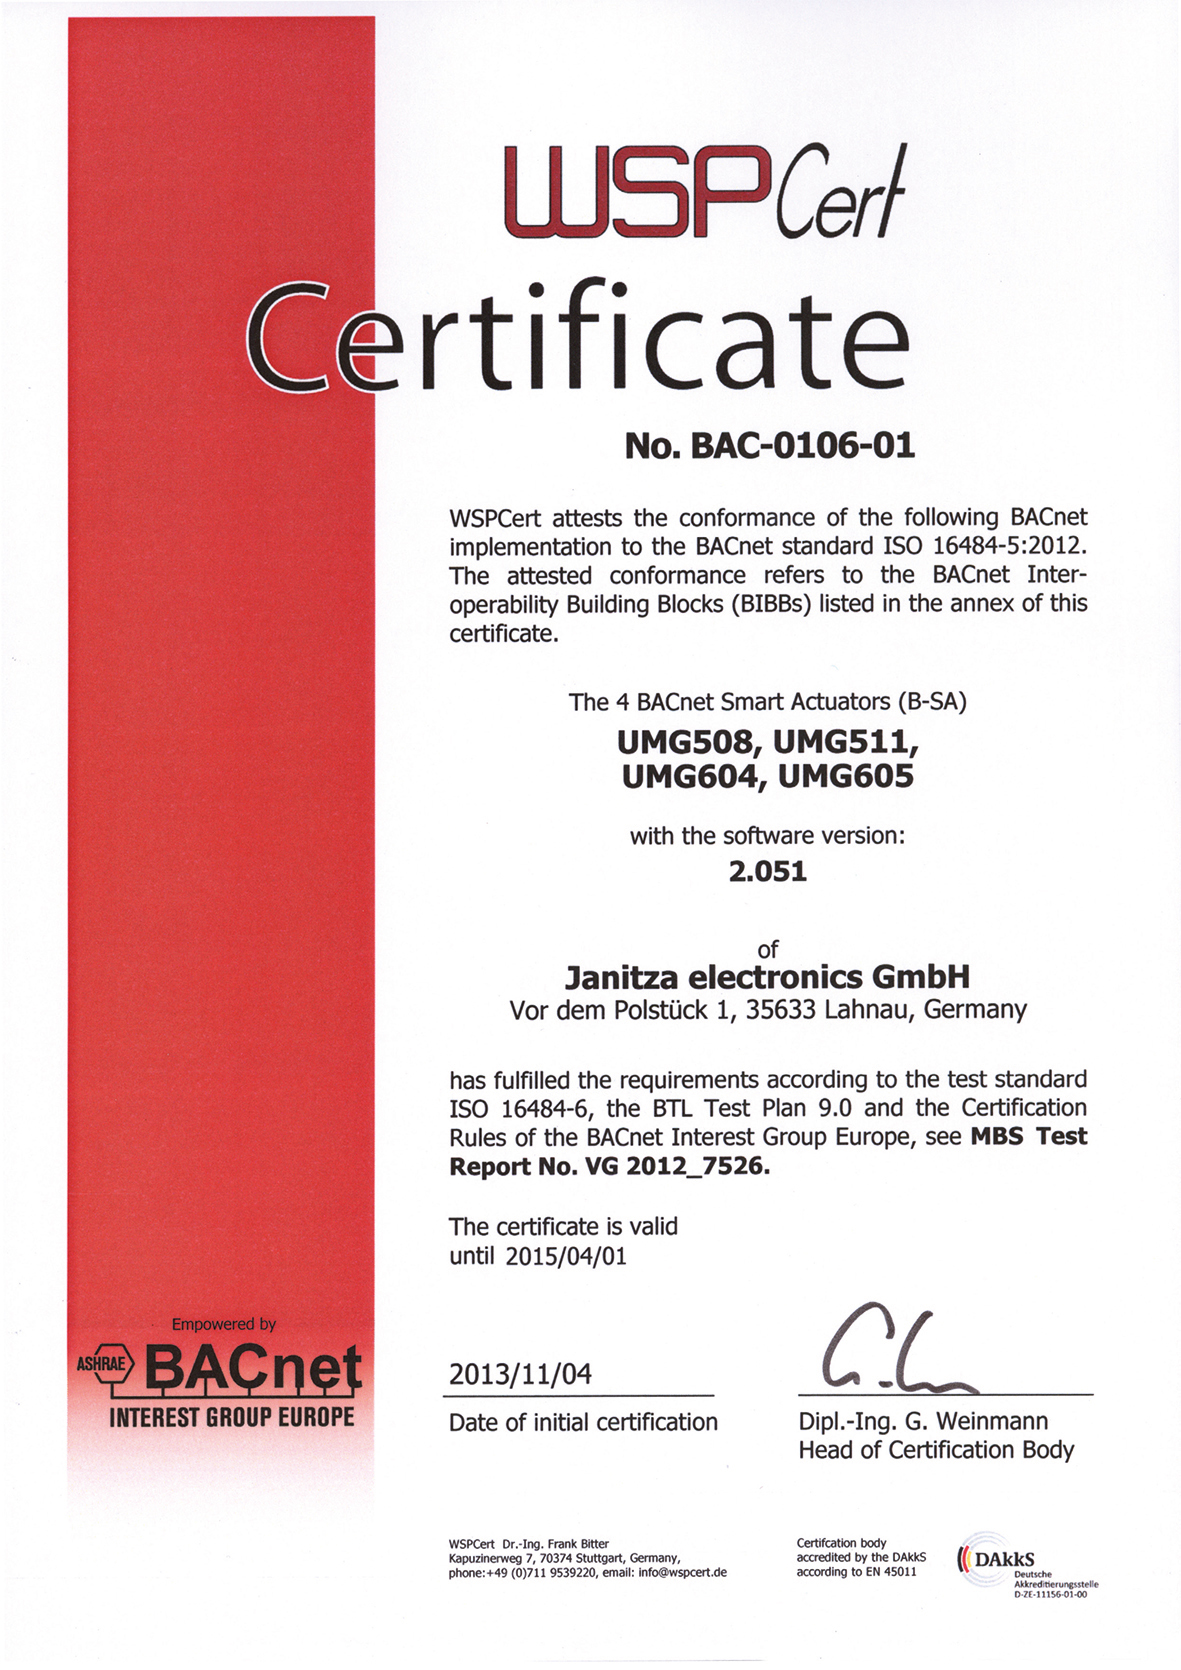 Image 4: The certificate of a national accreditation body confirms the conformity according to EN ISO/IEC 17025